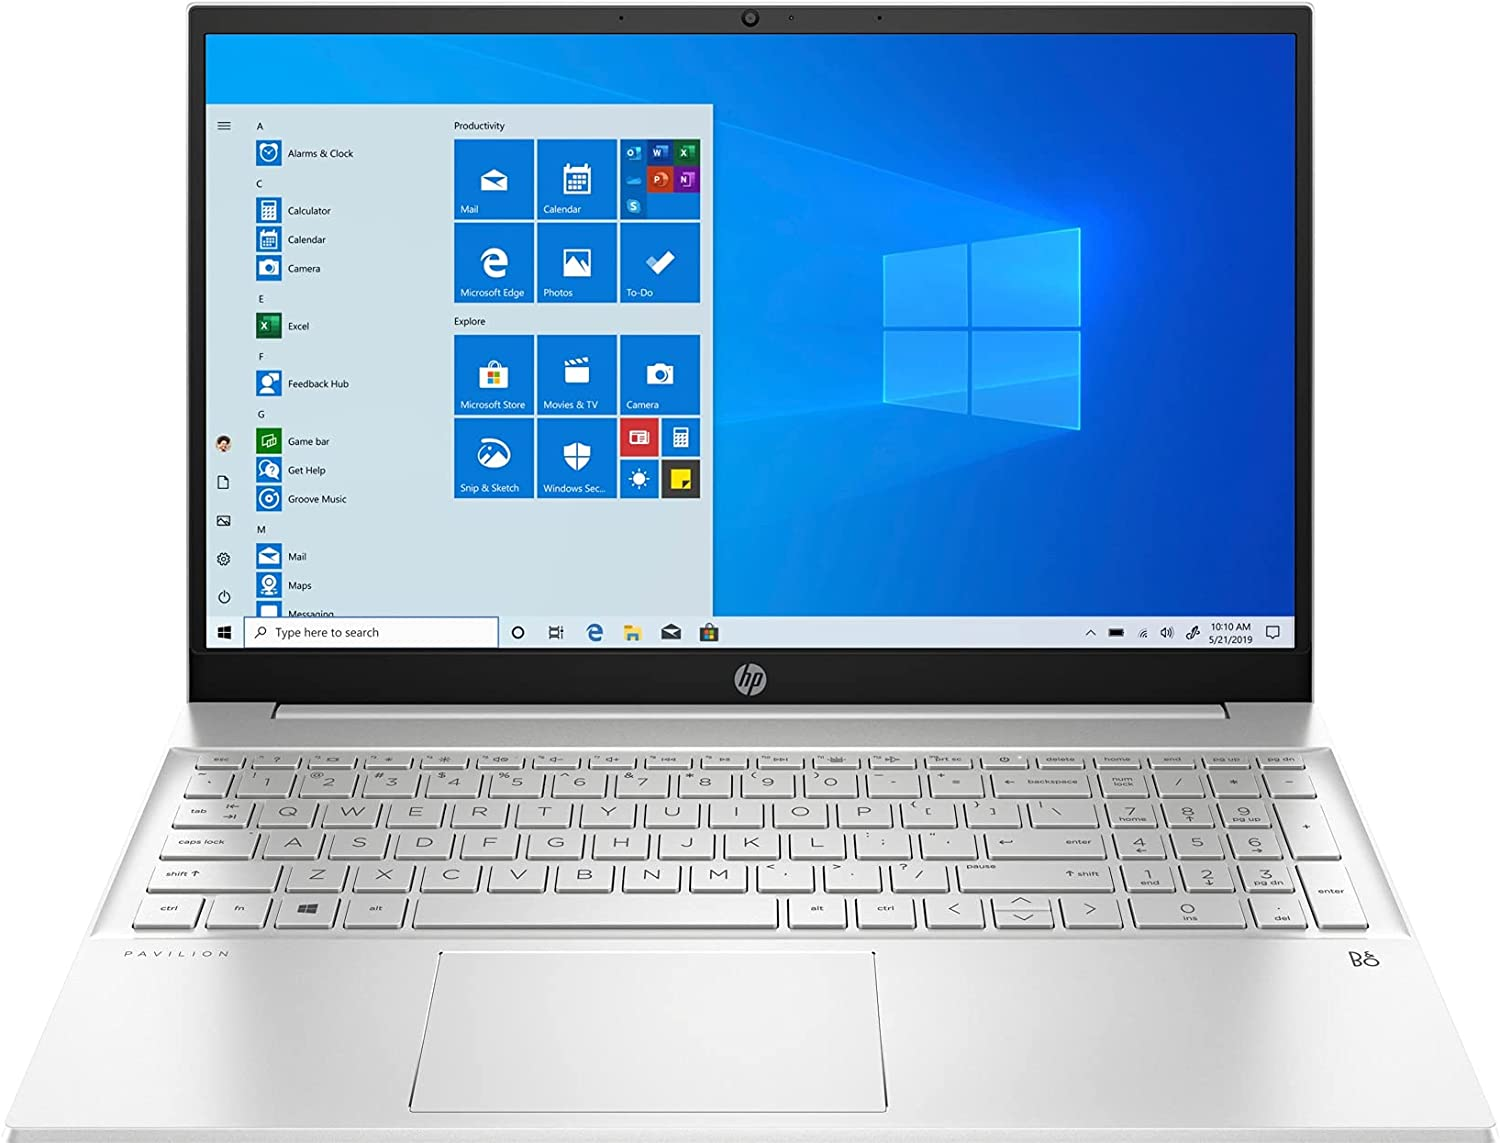 CUK Pavilion 15t Touch Business Notebook (Intel Core i7, 32GB RAM, 1TB NVMe SSD, 15.6